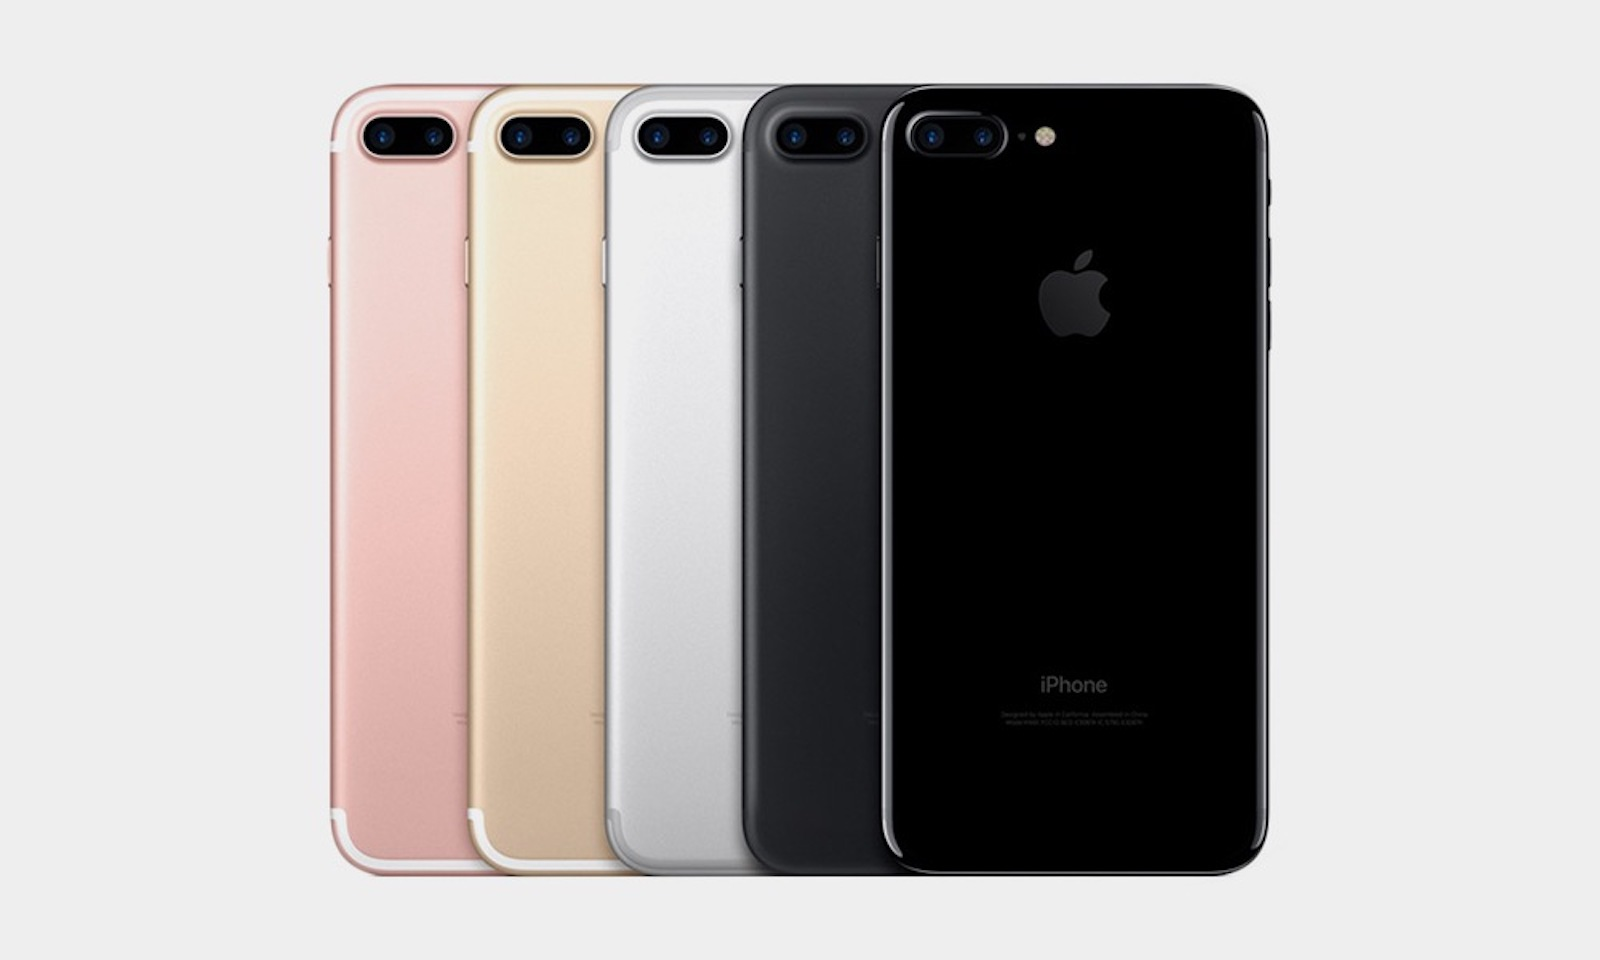 Image of iPhone 7 Plus models. Virgin Mobile is selling used iPhone 7 and iPhone 7 Plus models.